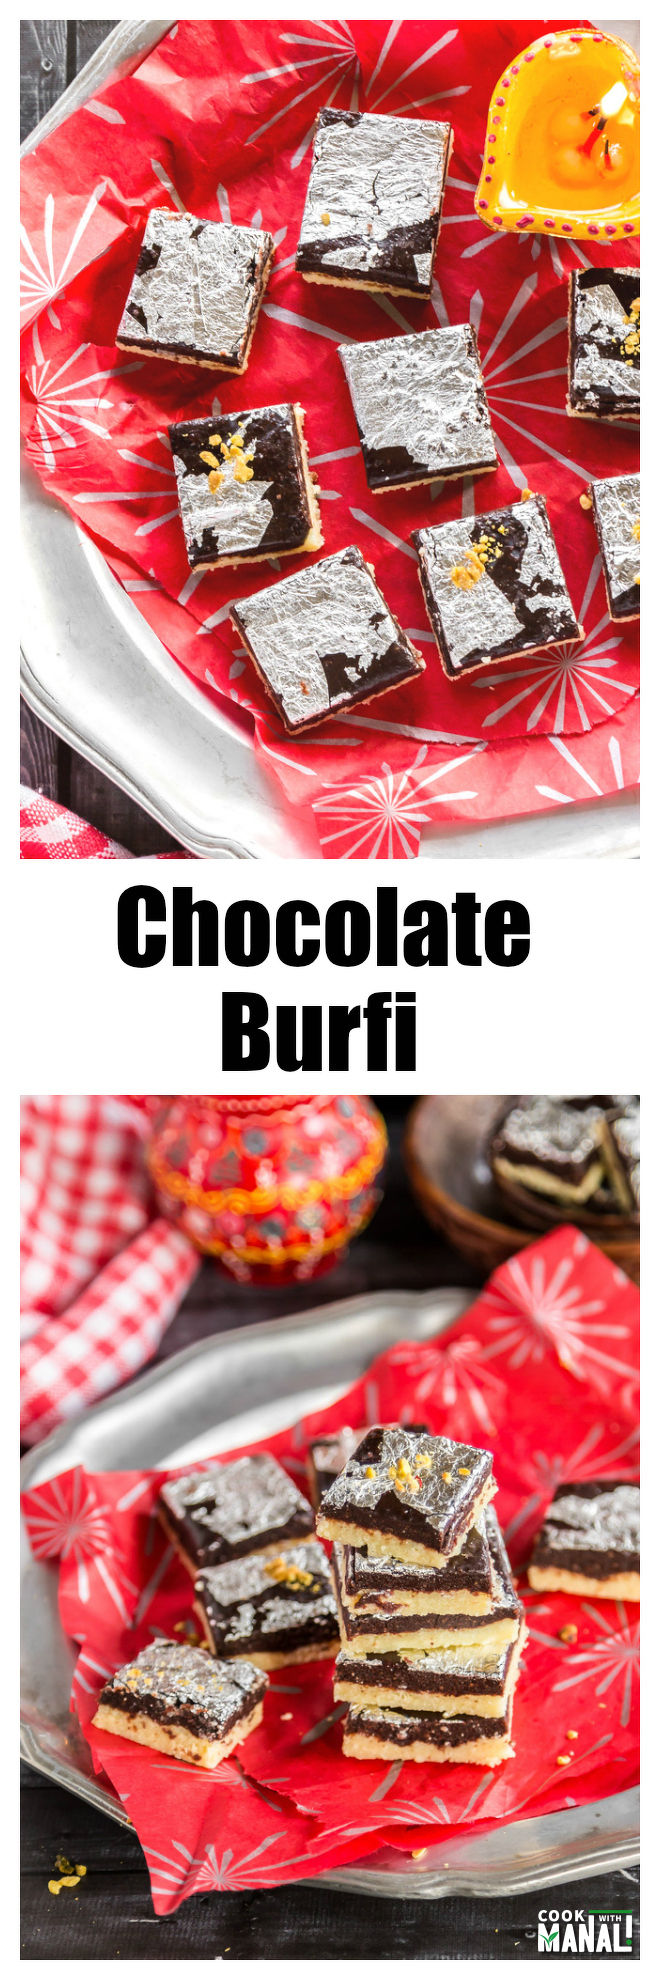 Chocolate Burfi Collage